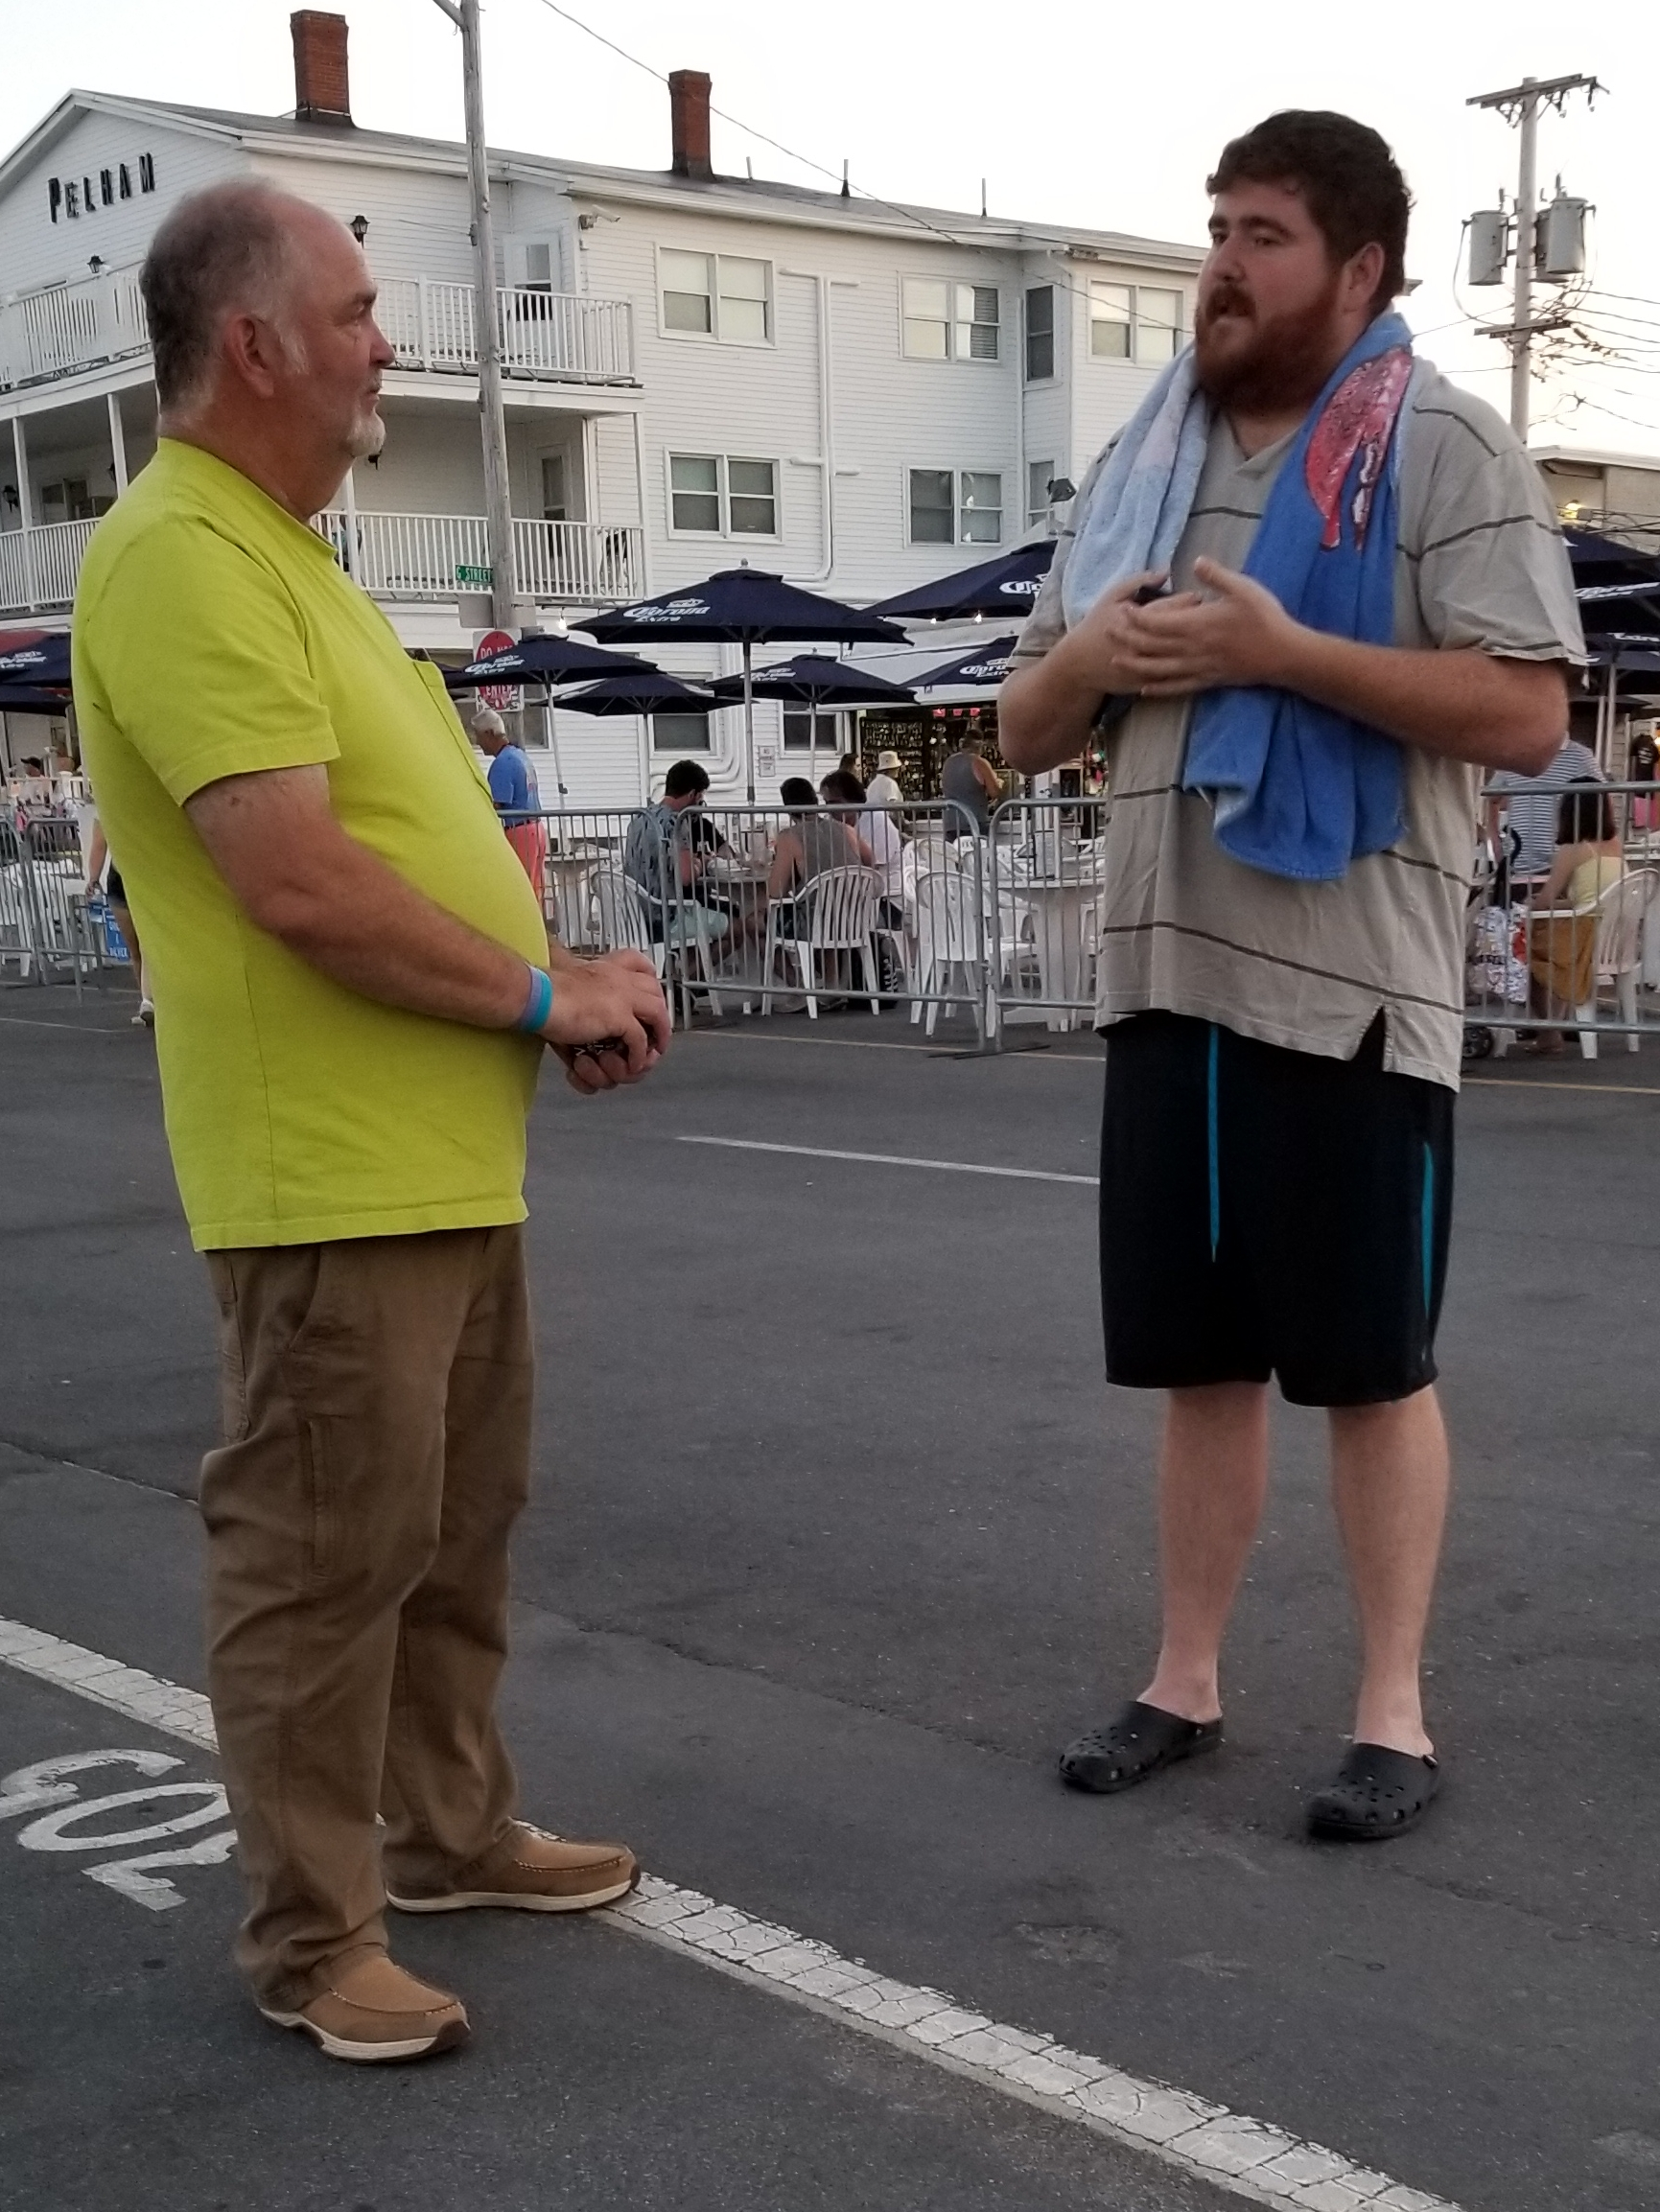 "This man (on the right) speaking with Chip was an anomaly. Chip had me come talk with him because the man said he was Jewish.  So he and I spoke for a half hour or more. When I told him I'm Jewisht and through studying came to be convinced that Jesus is the Messiah, he assumed I was joking.  Then he said it would only be okay for me to say I believe in Jesus if I'm making money off it. I told him I left a high-paying job as an Engineer to be a Missionary, so, nope, not in it for the money.  I follow Jesus because He's true.  By the way, the man wouldn't give me his name, so in this update I'll call him ""the man.""  The man said the Hebrew Bible is perfect, ""so why would I follow the New Testament?""  I reasoned with him that all you need is the Hebrew Bible to find Jesus. I even had him open a Bible right there and read the end of Isaiah 52 through Isaiah 53.  He didn't know what to make of that. I told him, ""It's really really obvious, but you might not like it.""  Understand, this man is unusual. The great majority of Jewish people don't consider The Hebrew Bible to be perfect, or even written by God. Most Jewish people are secular in their beliefs. So for him to say he agrees with Moses is unusual.  I reminded him that Moses said that we must have a blood sacrifice for the forgiveness of sin, ""for the life of the body is in its blood. I have given you the blood on the altar to purify you, making you right with the LORD. It is the blood, given in exchange for a life, that makes purification possible"" (Leviticus 17:11).  He said we can get atonement through other ways. But I reminded him that God's Word, through the Prophet Moses, in the Torah, says we MUST have a blood sacrifice, and God allowed the place of the sacrifice, The Temple, to be destroyed shortly after Jesus, the Lamb of God, made that final blood sacrifice.  This man was confused. He kept going back to his belief that Christianity was invented by the Romans and the New Testament written by Roman authors to subdue people.  I let him know that the Roman Empire didn't adopt Christianity until the 4th Century and we have NT manuscripts going back to the 1st. The New Testament was written by Jewish Prophets about the Jewish Messiah who was prophesied ahead of time in the Jewish Bible.  After about a half hour he wanted to leave. I offered him a copy of my testimony, how I came to realize that Jesus is the Messiah, but he wouldn't take it. He said, ""I can't take that because I fear the LORD.""  I'm glad this man heard the gospel audibly. Please pray that The Holy Spirit does to him what He did to me all those years ago. The Holy Spirit opened my eyes. And He can do that for anyone.  If you want a copy of my testimony, entitled ""A Jew and His God,"" please feel free to check it out here: https://mystory.great-news.org"